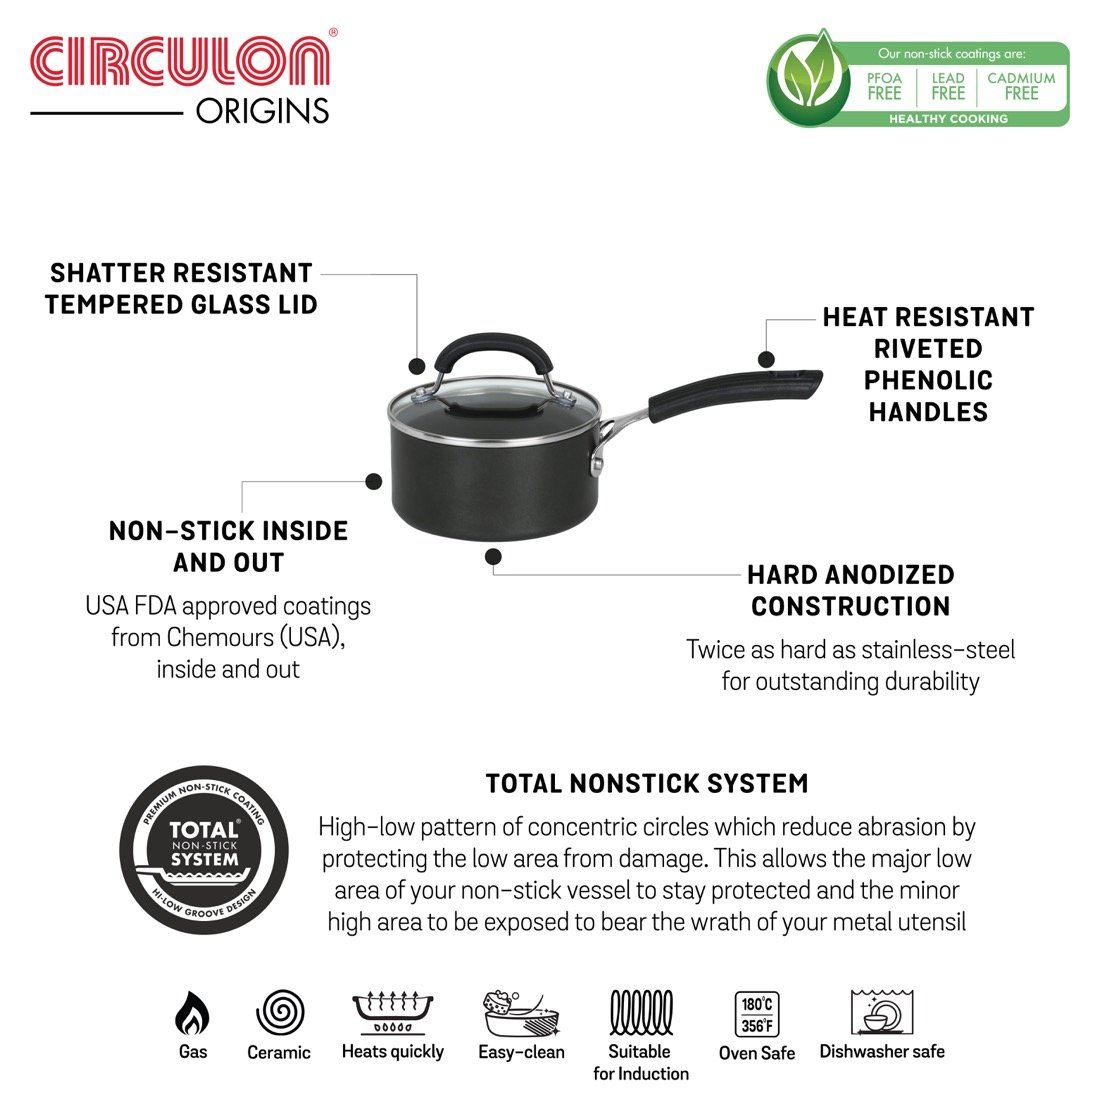 Circulon origins non-stick + hard anodized saucepan advantages